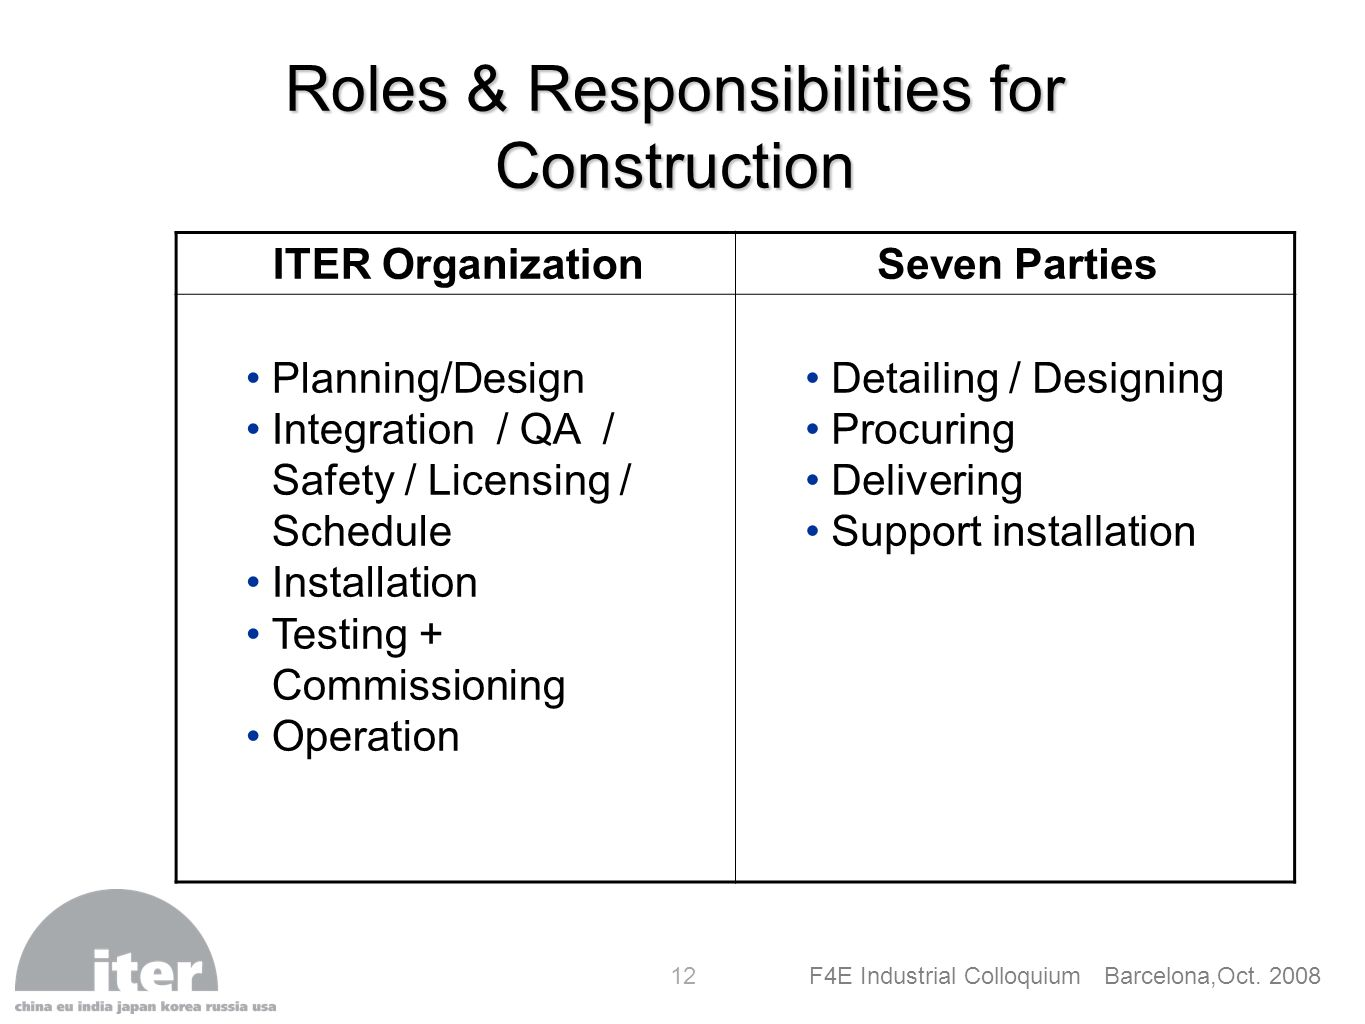 Roles & Responsibilities for Construction